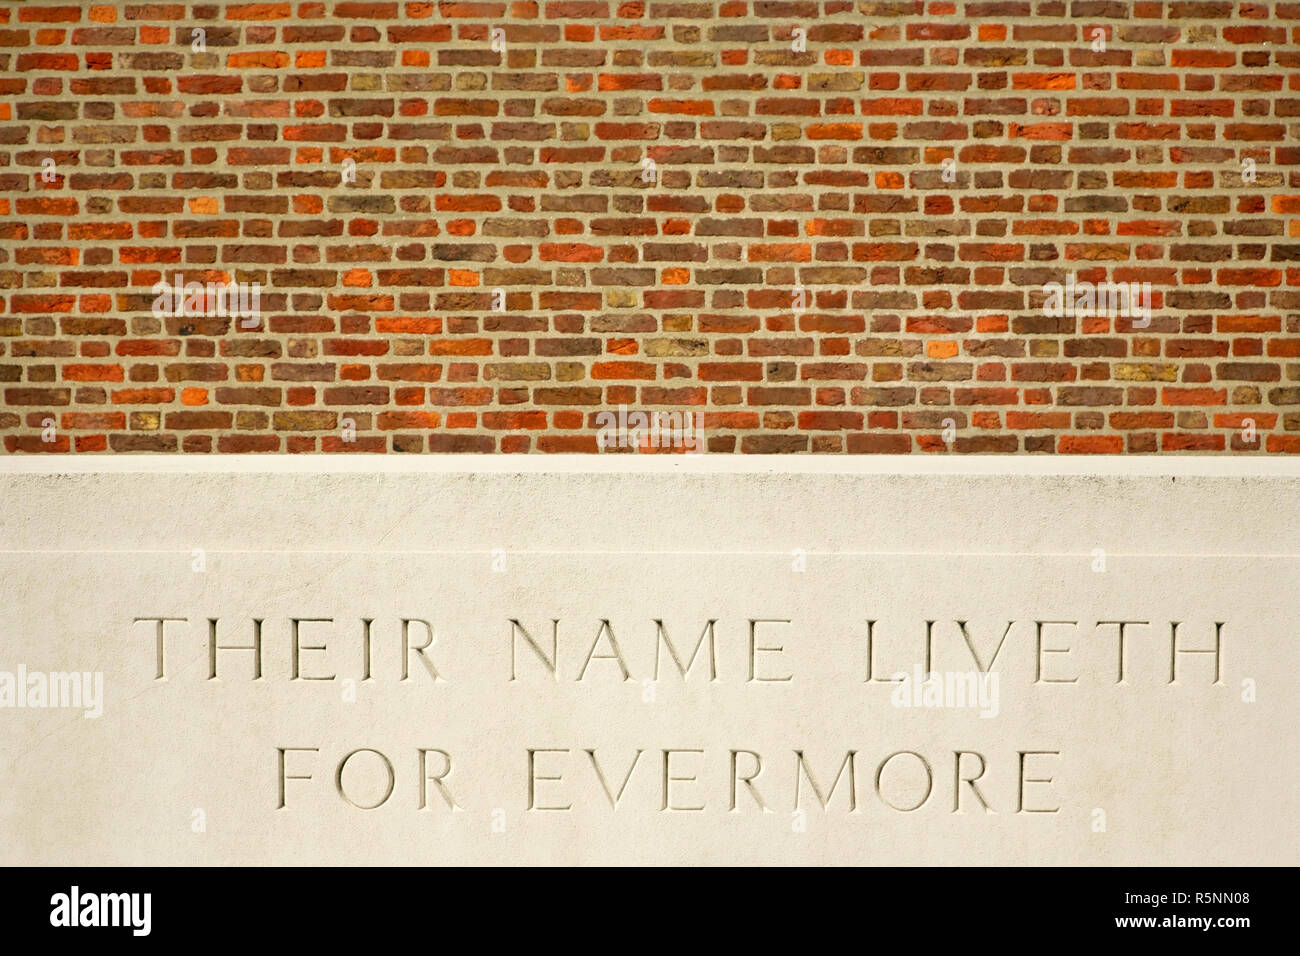 Memorial stone at the allied St Sever Cemetery Extension, Rouen, France. - Stock Image